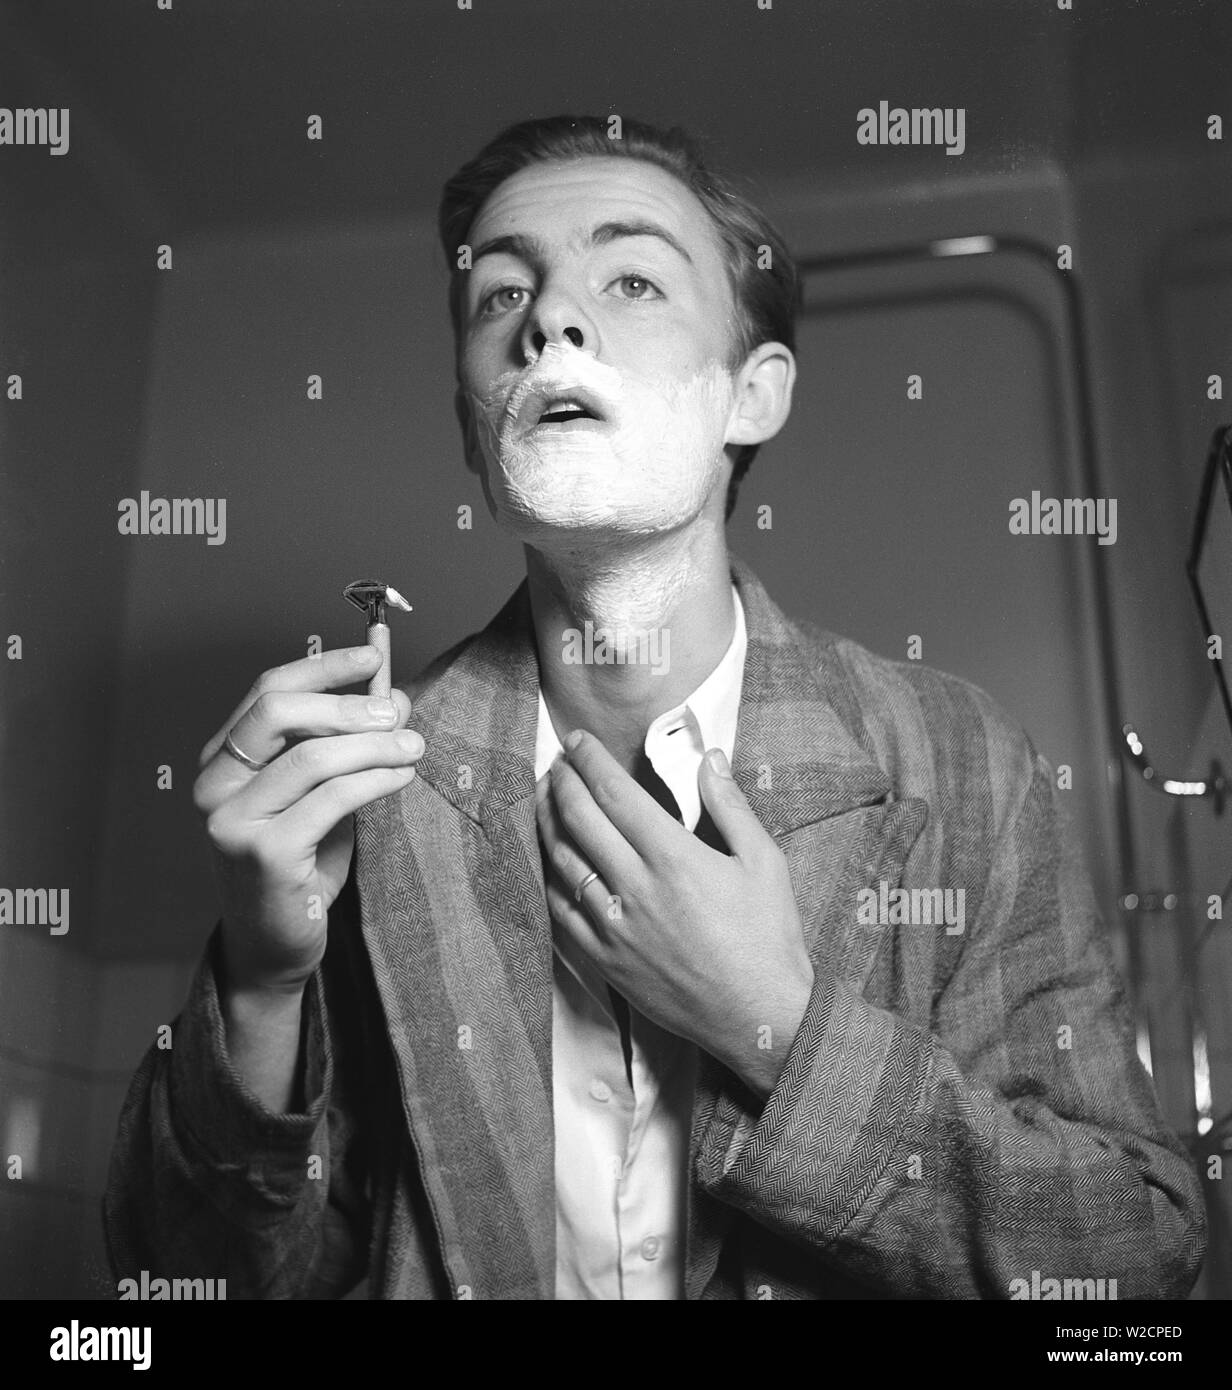 Getting a shave in the 1940s. A young man is shaving. Sweden 1940 Kristoffersson ref 157-5 Stock Photo